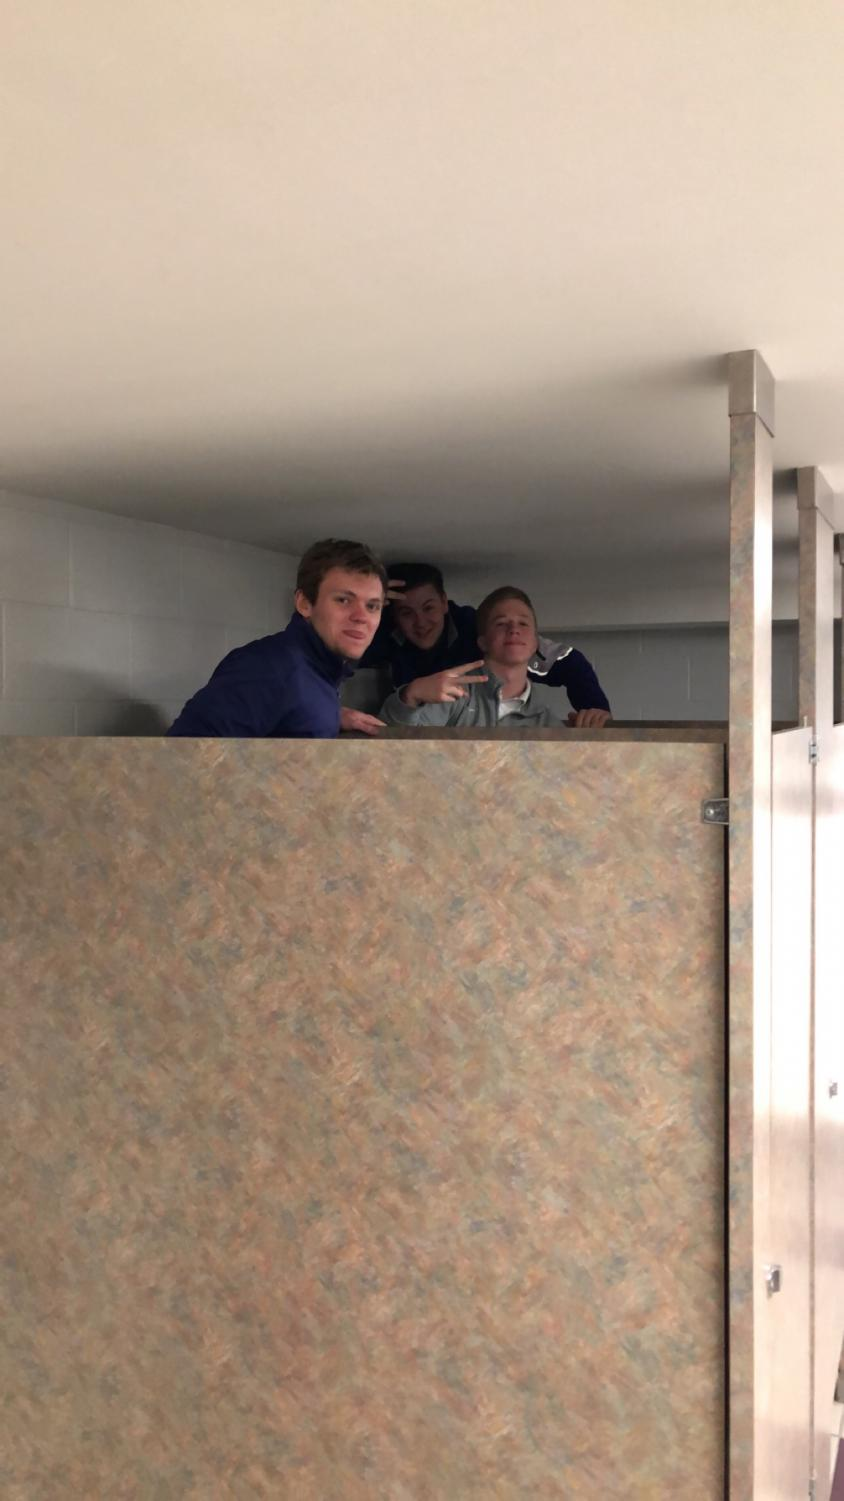 Gunnar+Wall%2C+Brody+Tebbe%2C+and+Jake+Macenko+taking+in+the+%231+ranked+bathroom+in+the+school.